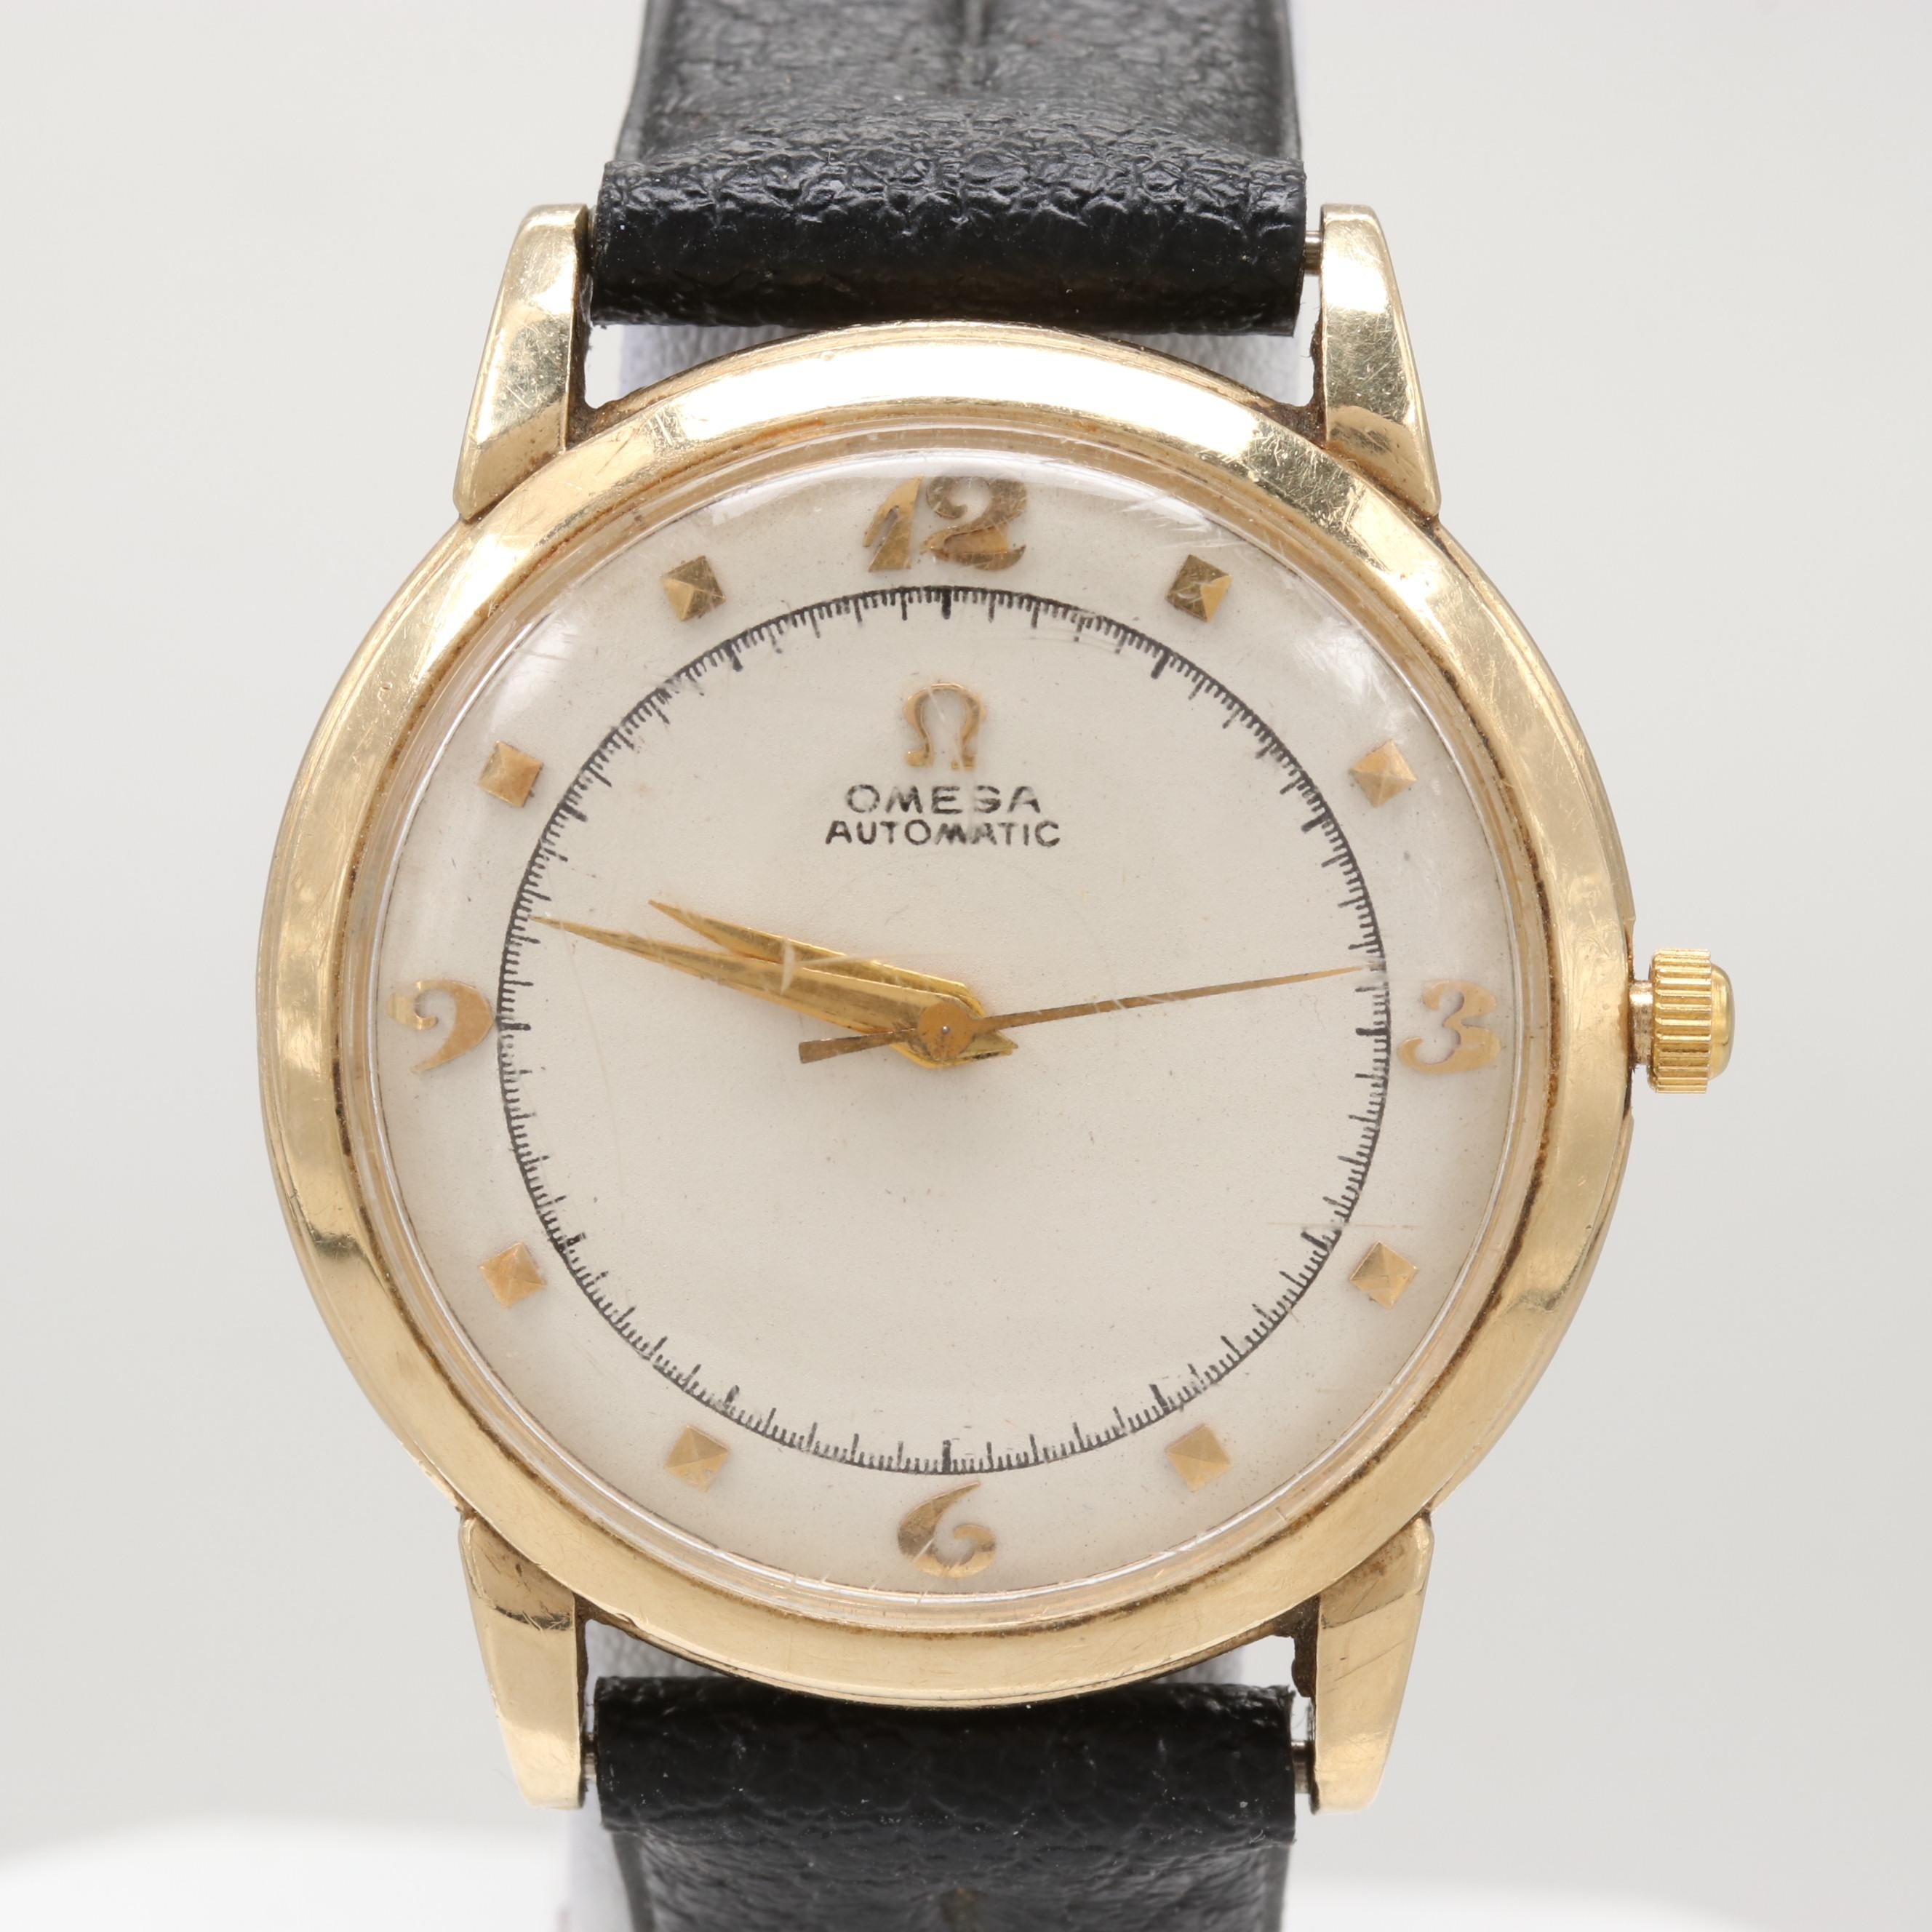 Omega 14K Yellow Gold Automatic Wristwatch